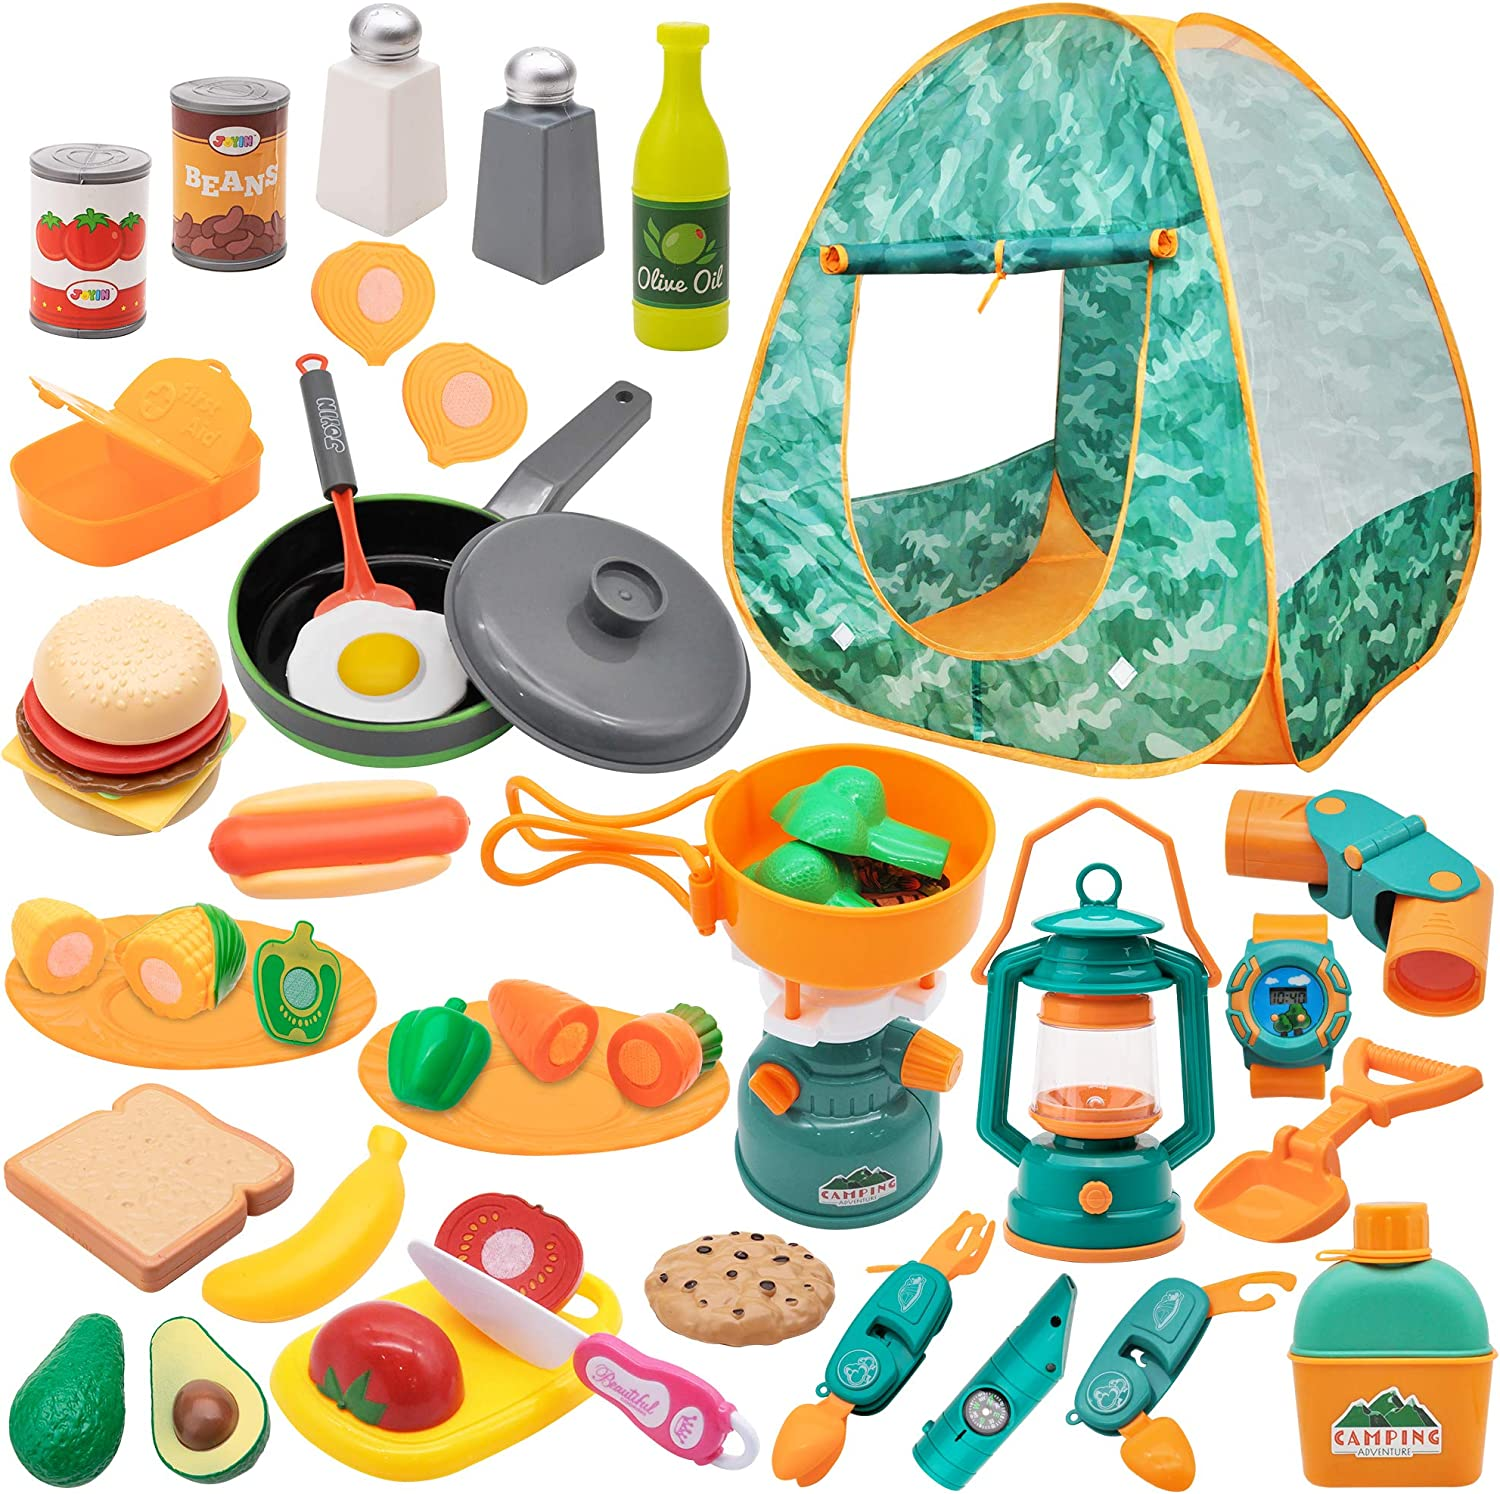 JOYIN Kids Camping Set with Tent 40+ pcs Camping Gear Tool Pretend Play Set for Kids Toddlers Indoor and Outdoor Toy Birthday Gift